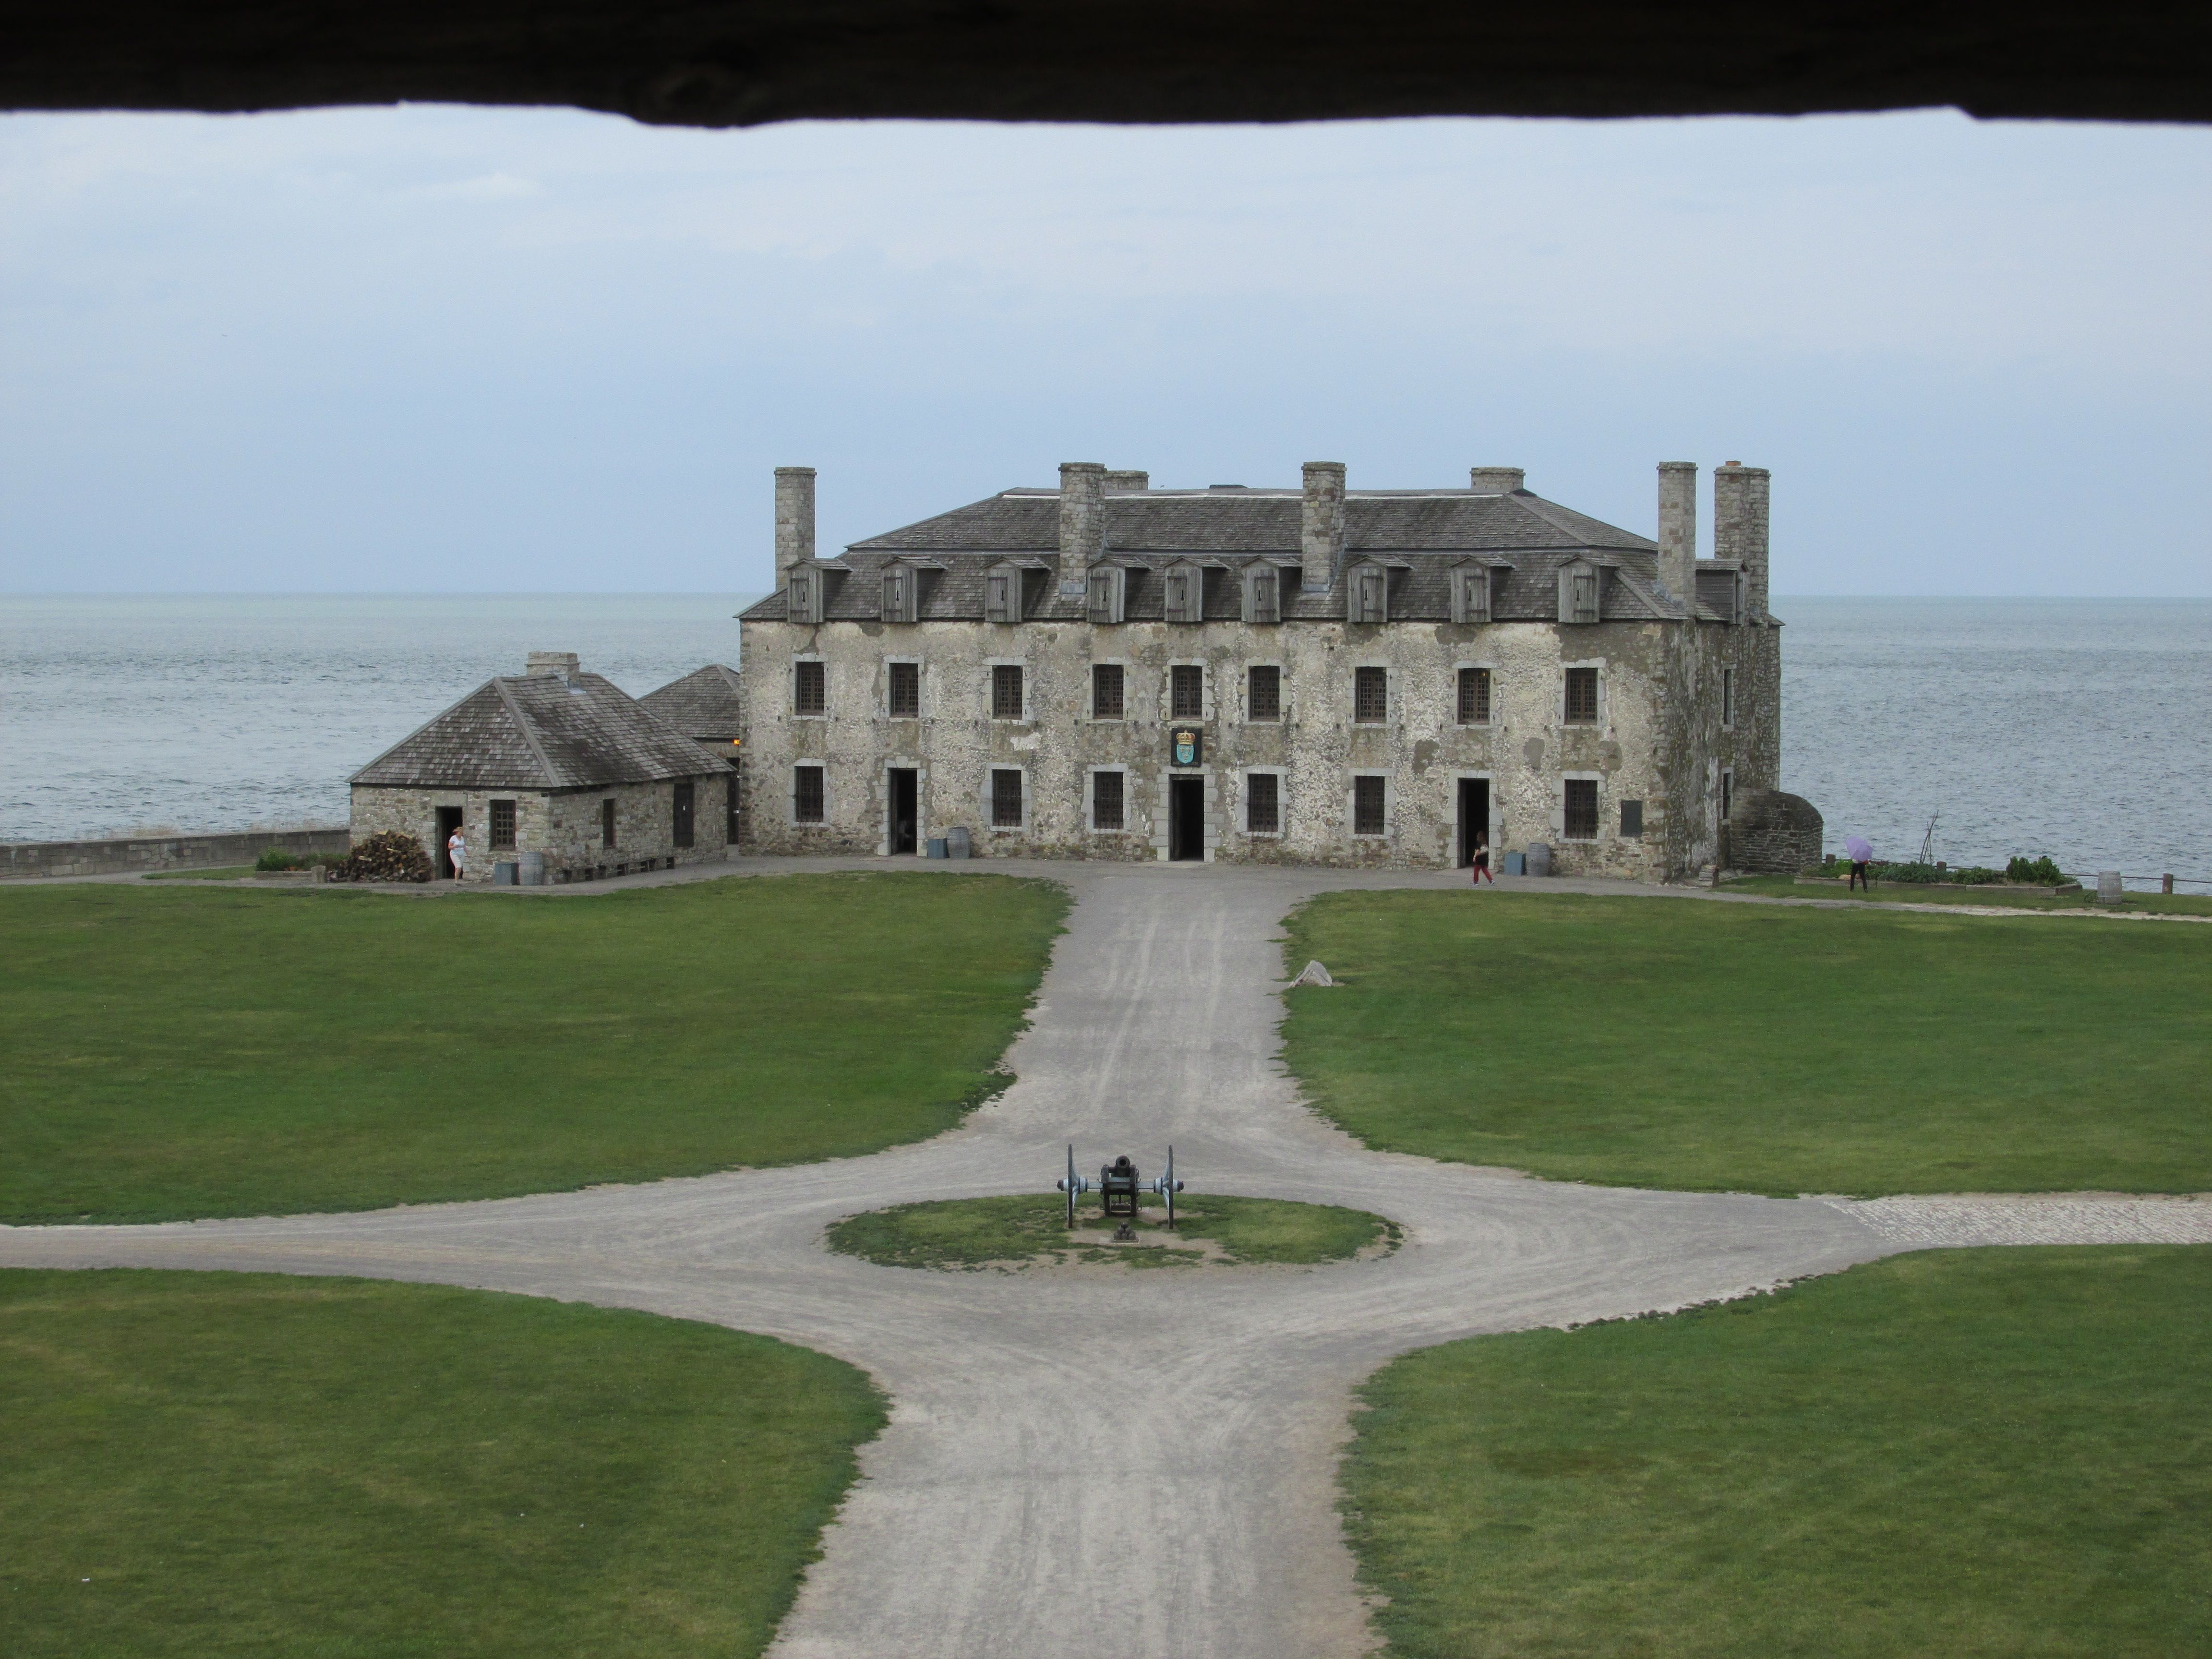 French Castle Fort Niagara In York State